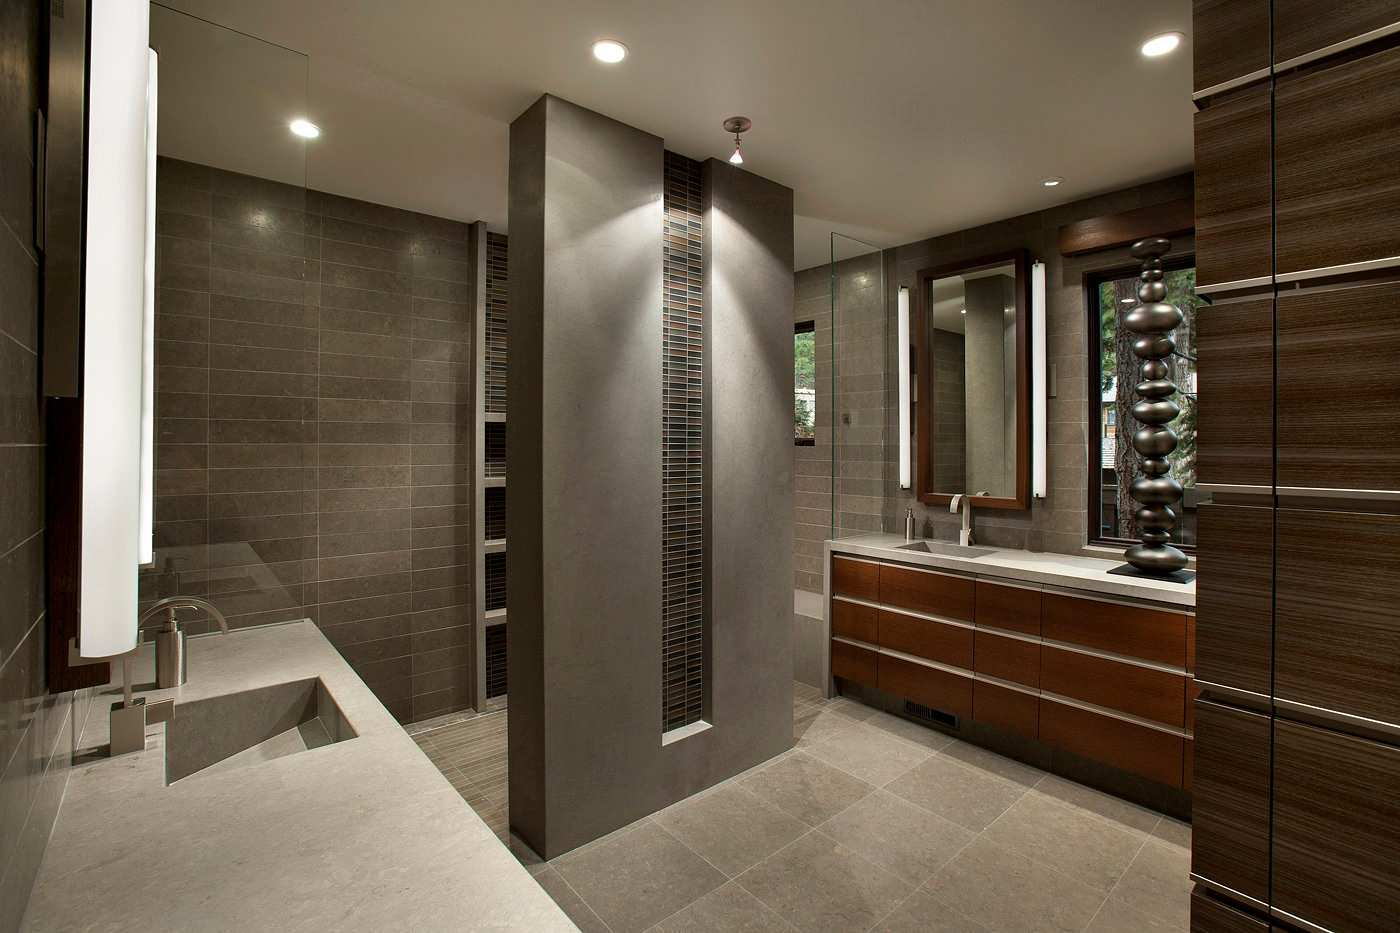 Elements of stone and wood in a Contemporary bathroom